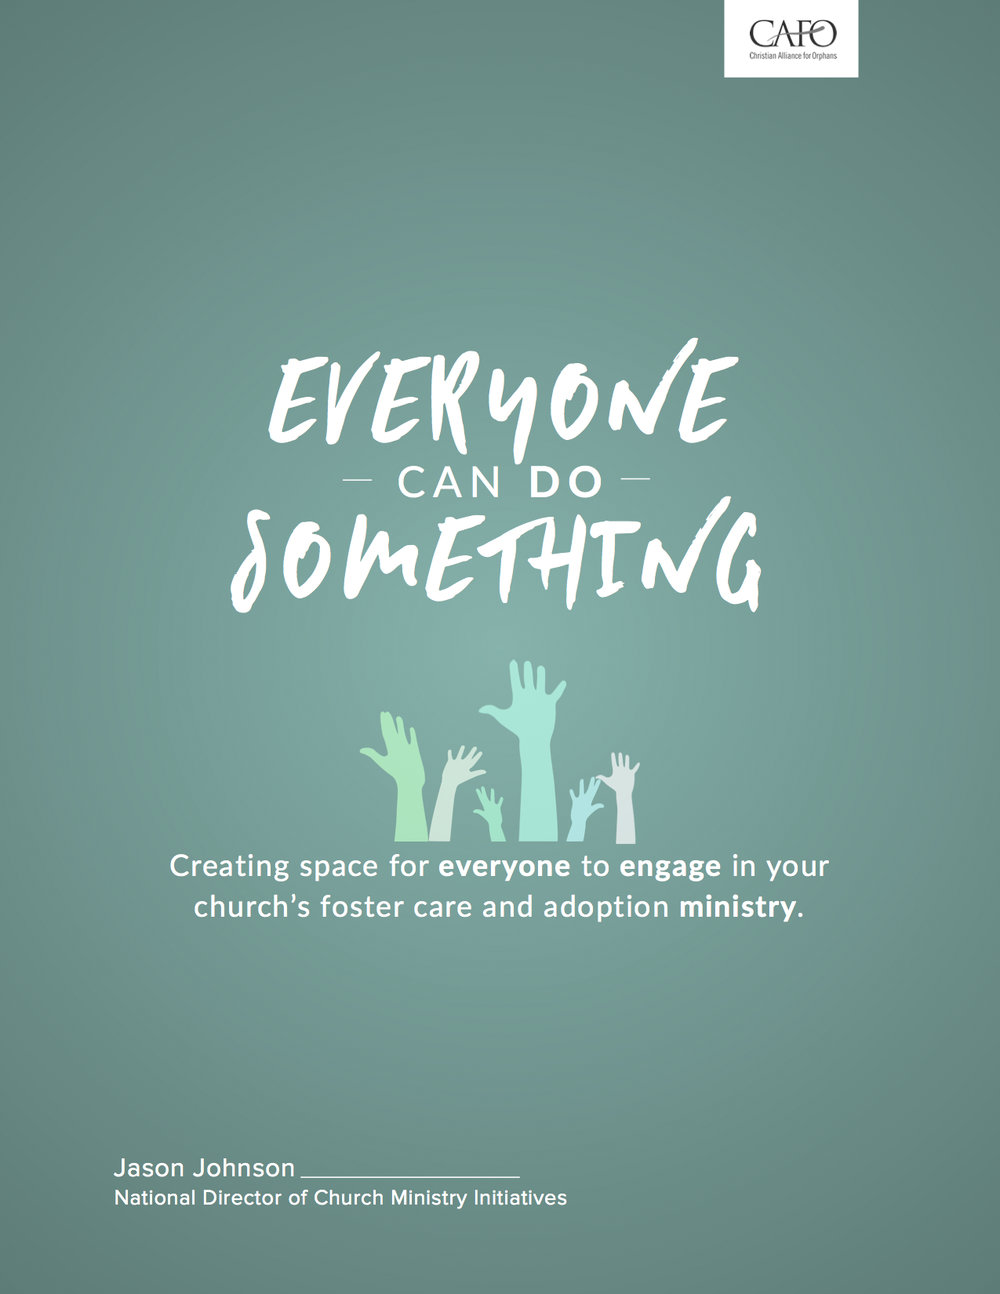 A primer on building a church culture of foster care and adoption where EVERYONE has a role to play.